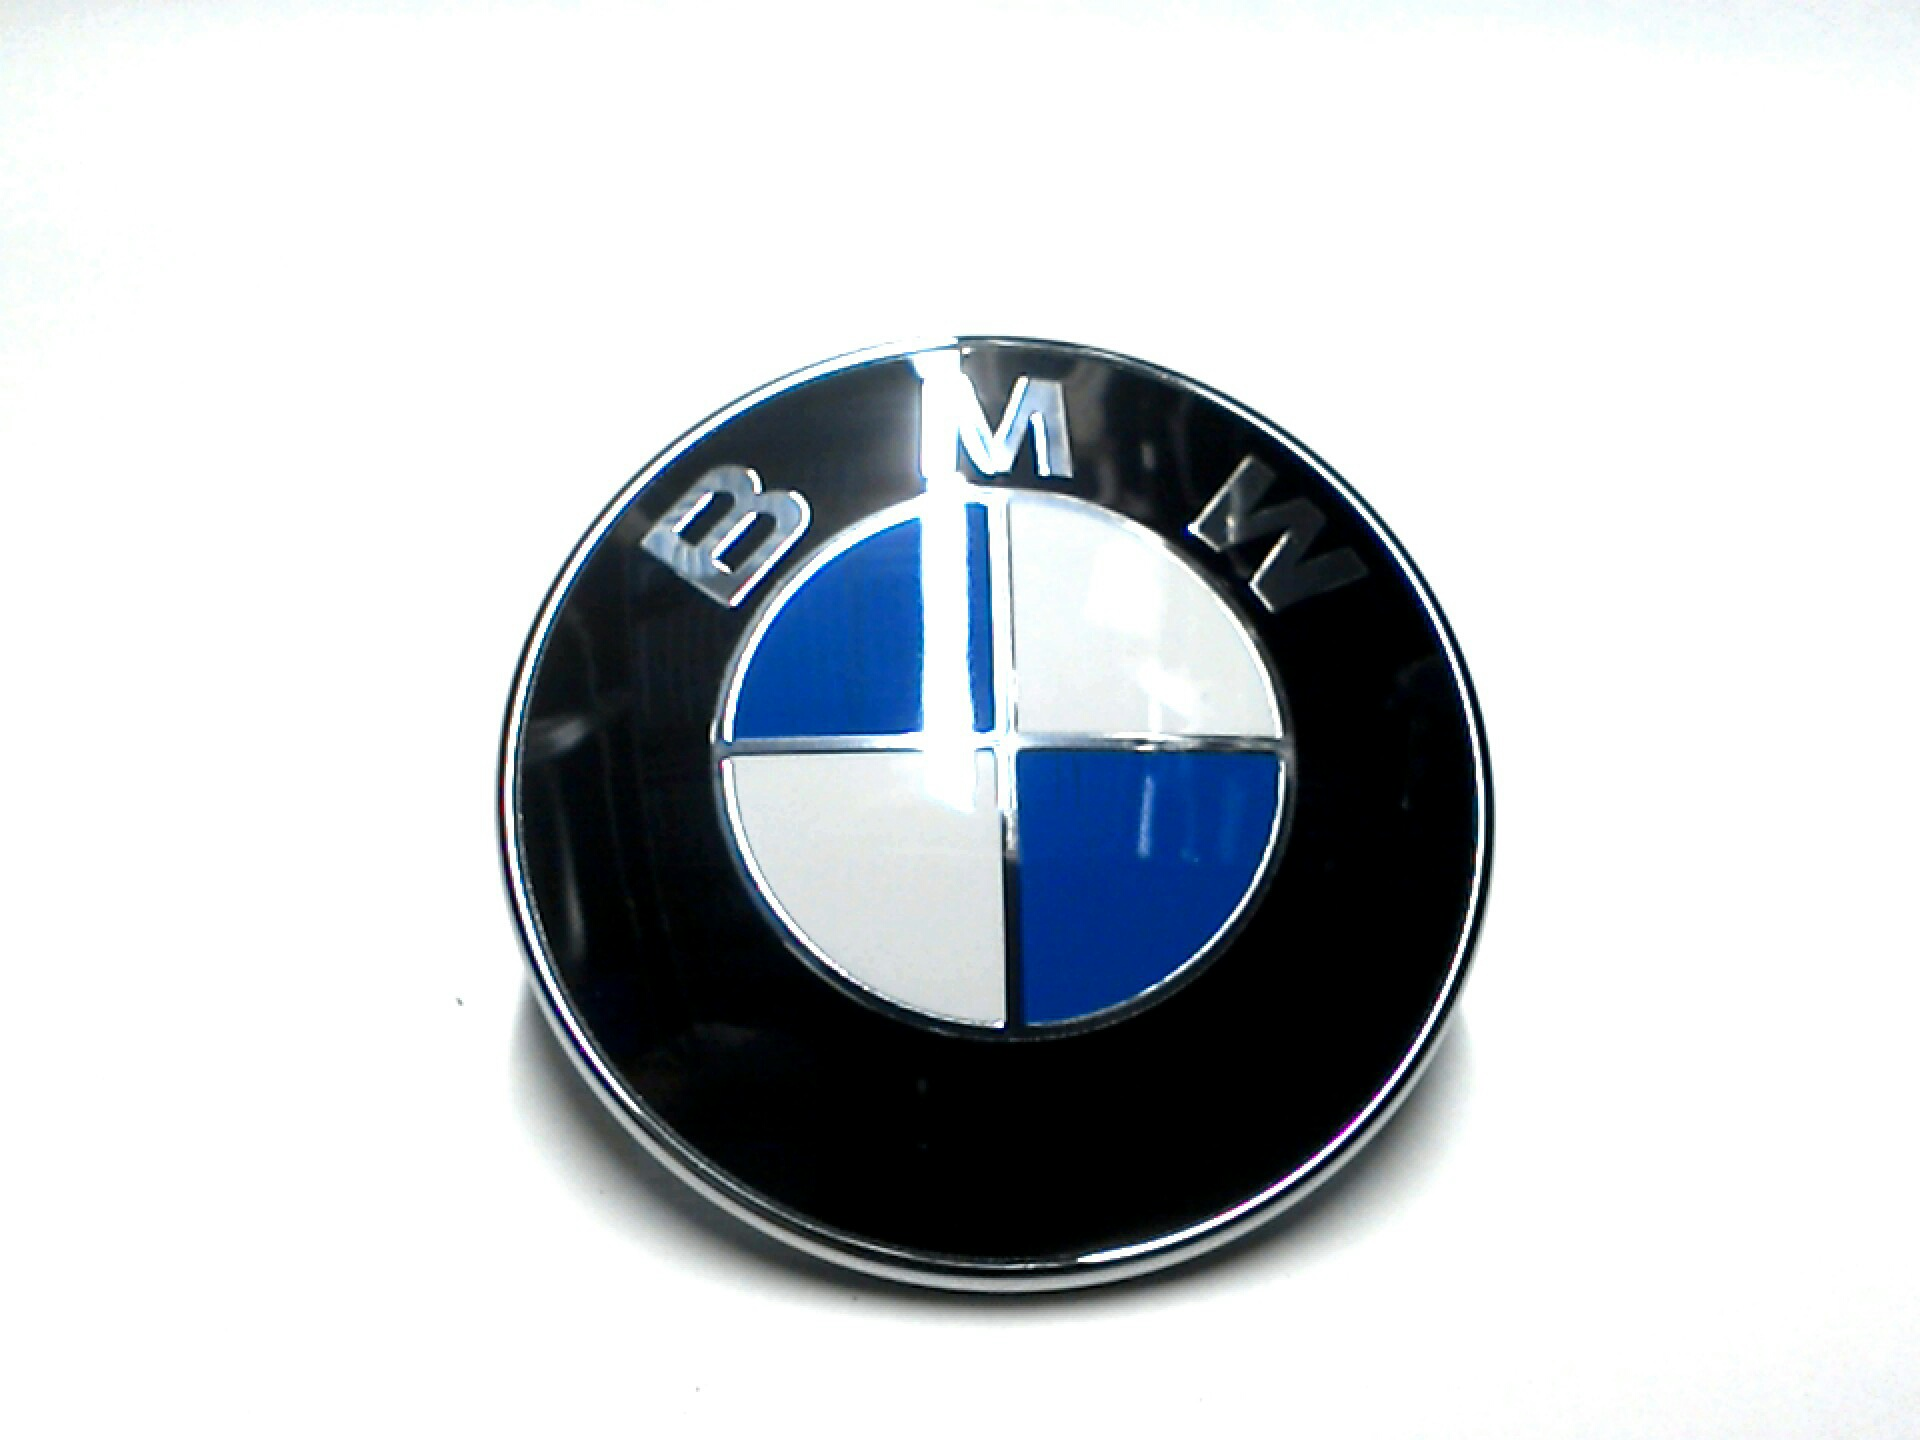 51147044207 2009 Bmw Badge D 70mm Trim Front Body